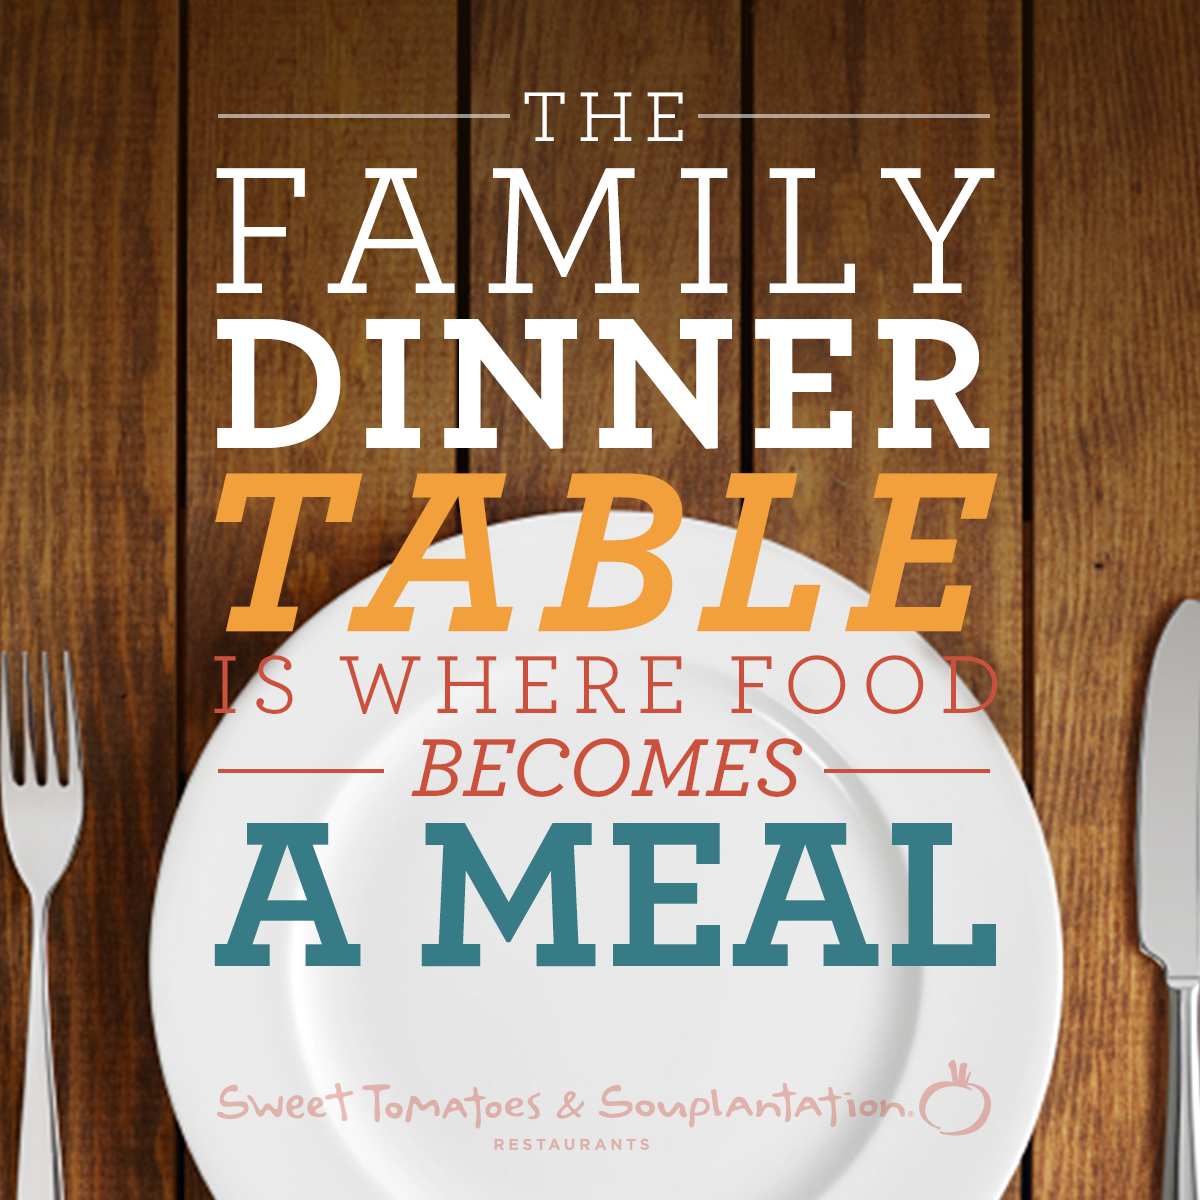 The family dinner table is where food becomes a meal for Table quotes